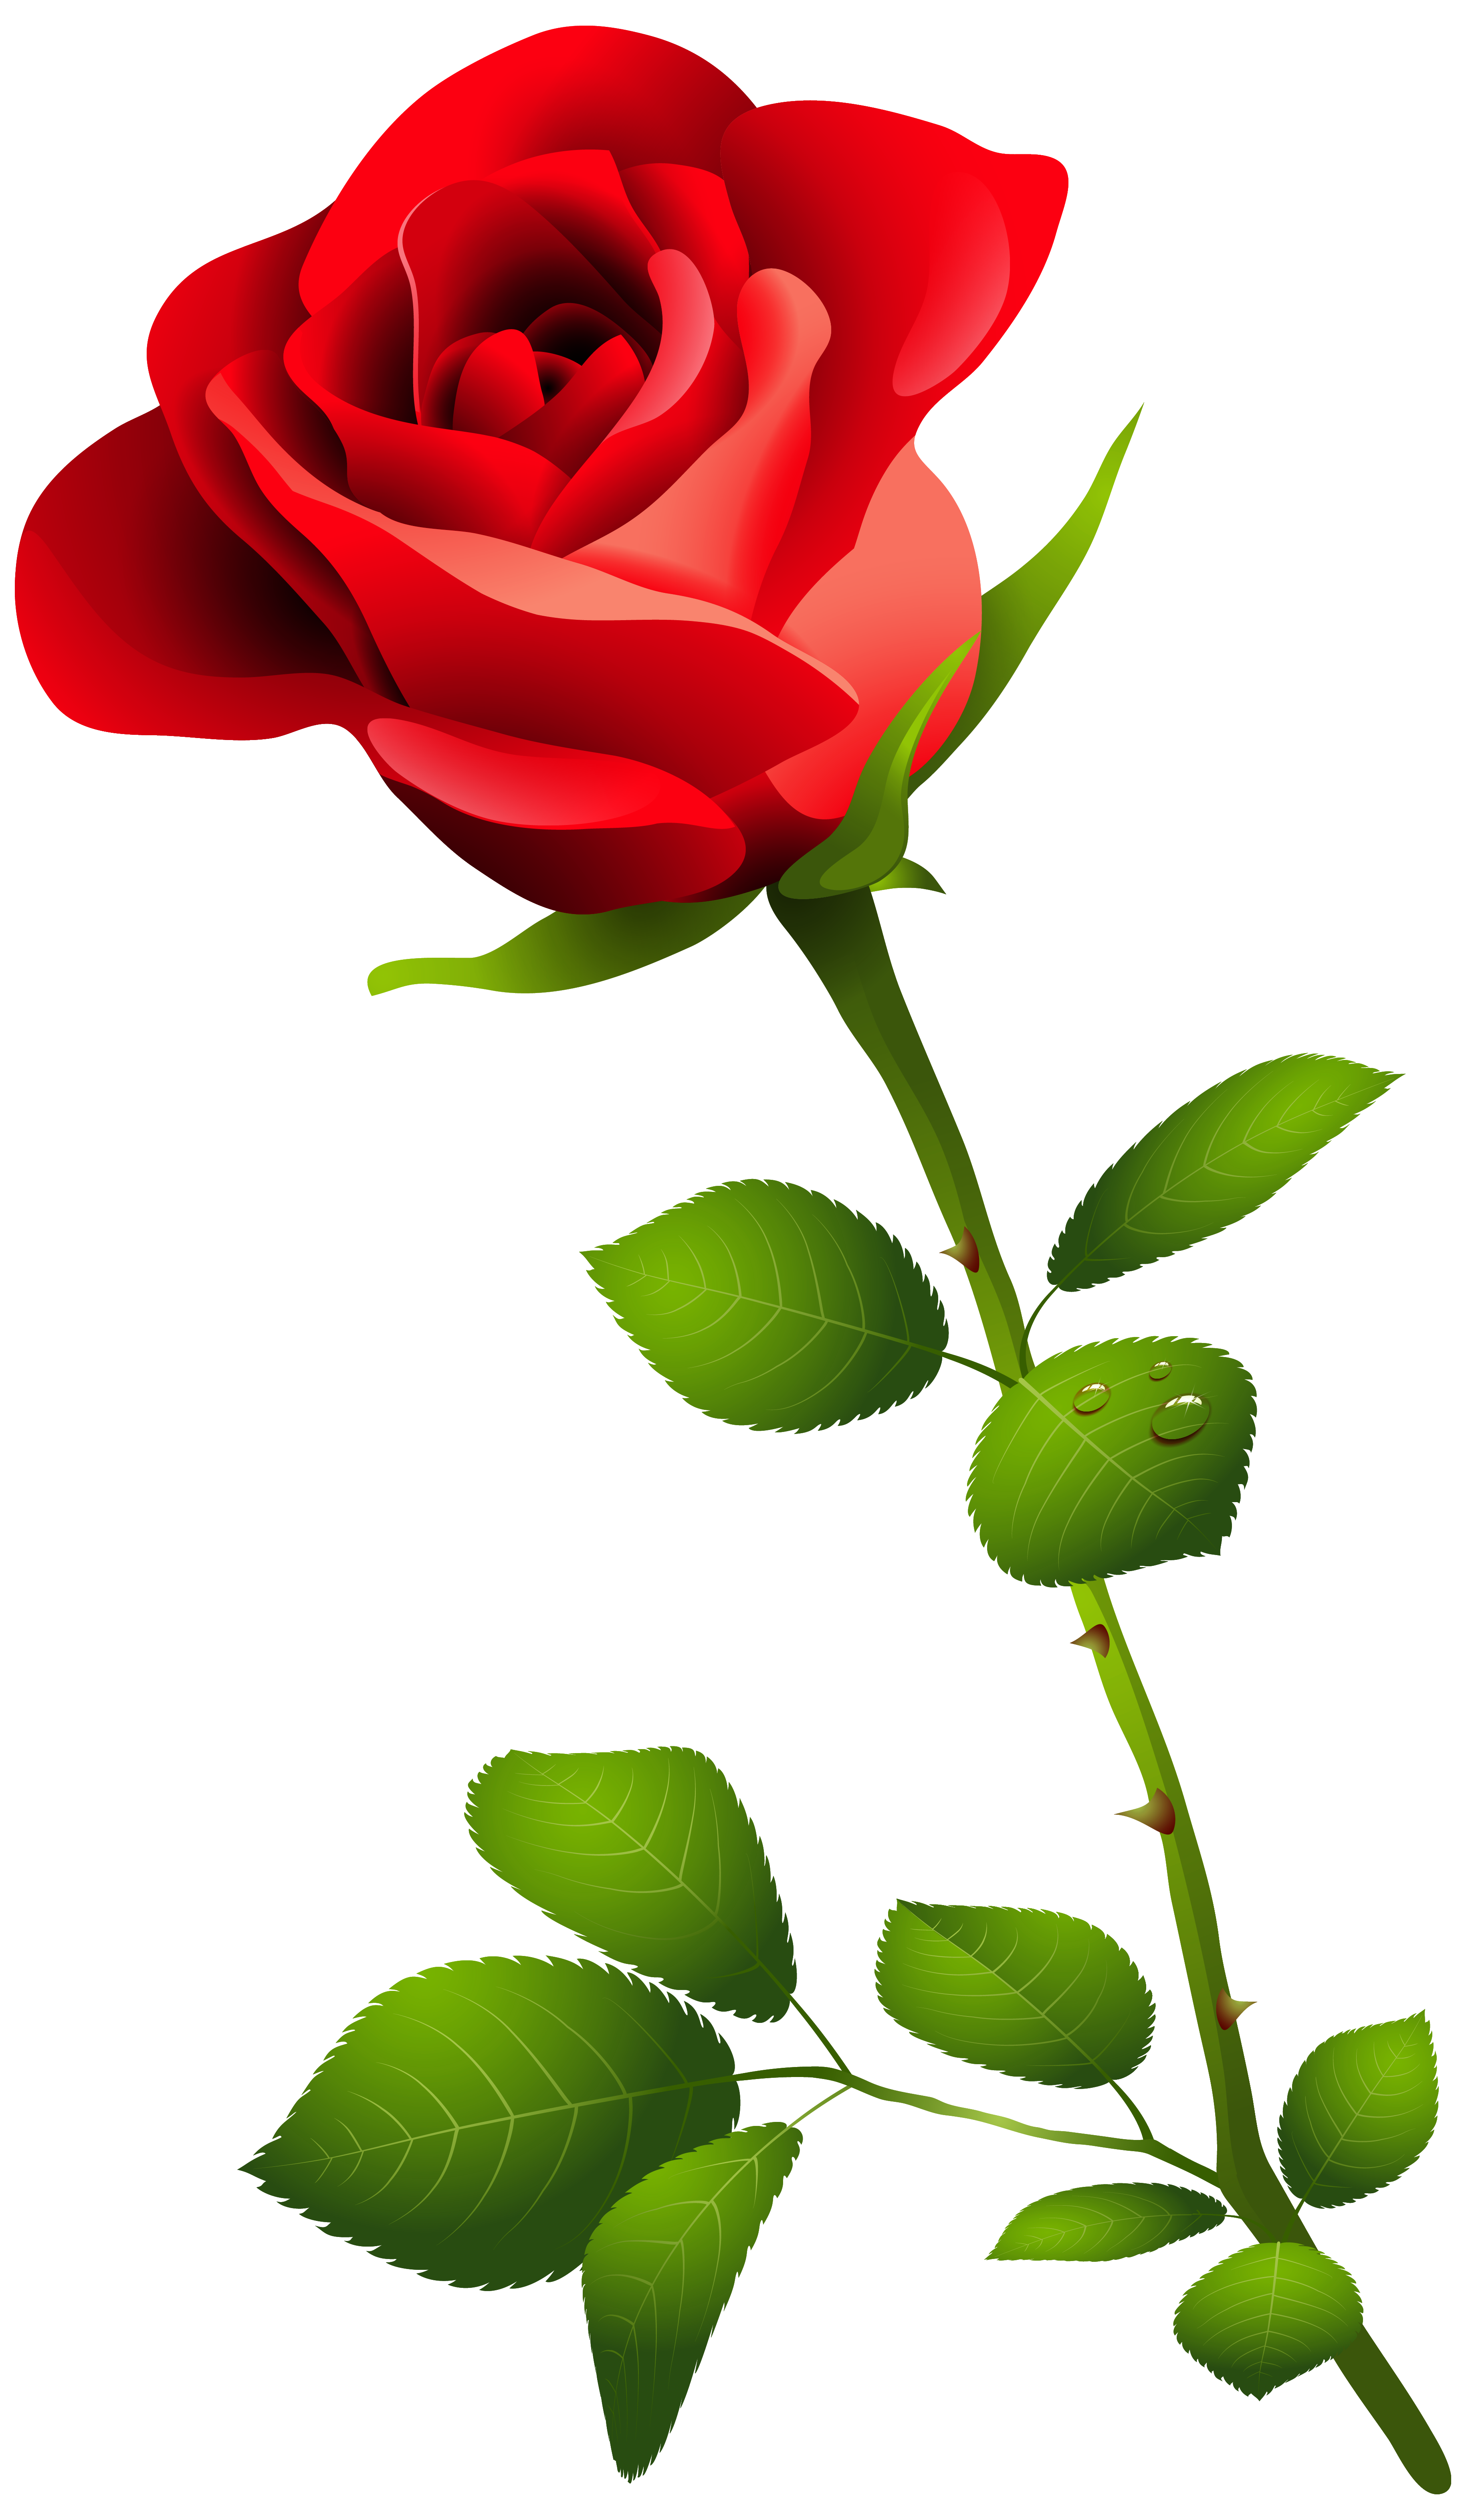 Red Rose With Stem Png Clipart Image Transparent Free